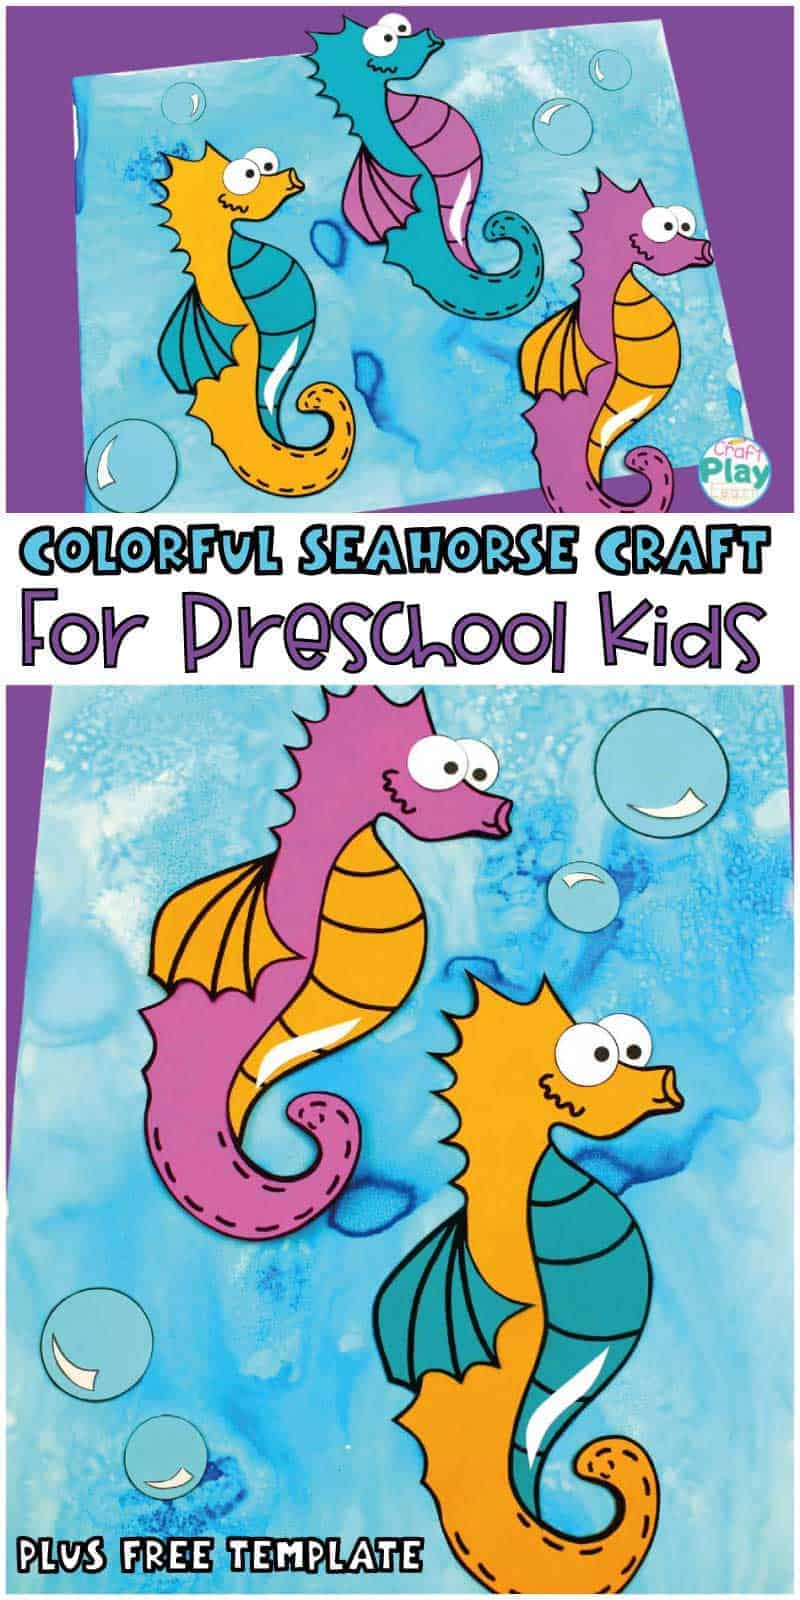 Colorful Seahorse Craft For Preschool Kids Craft Play Learn